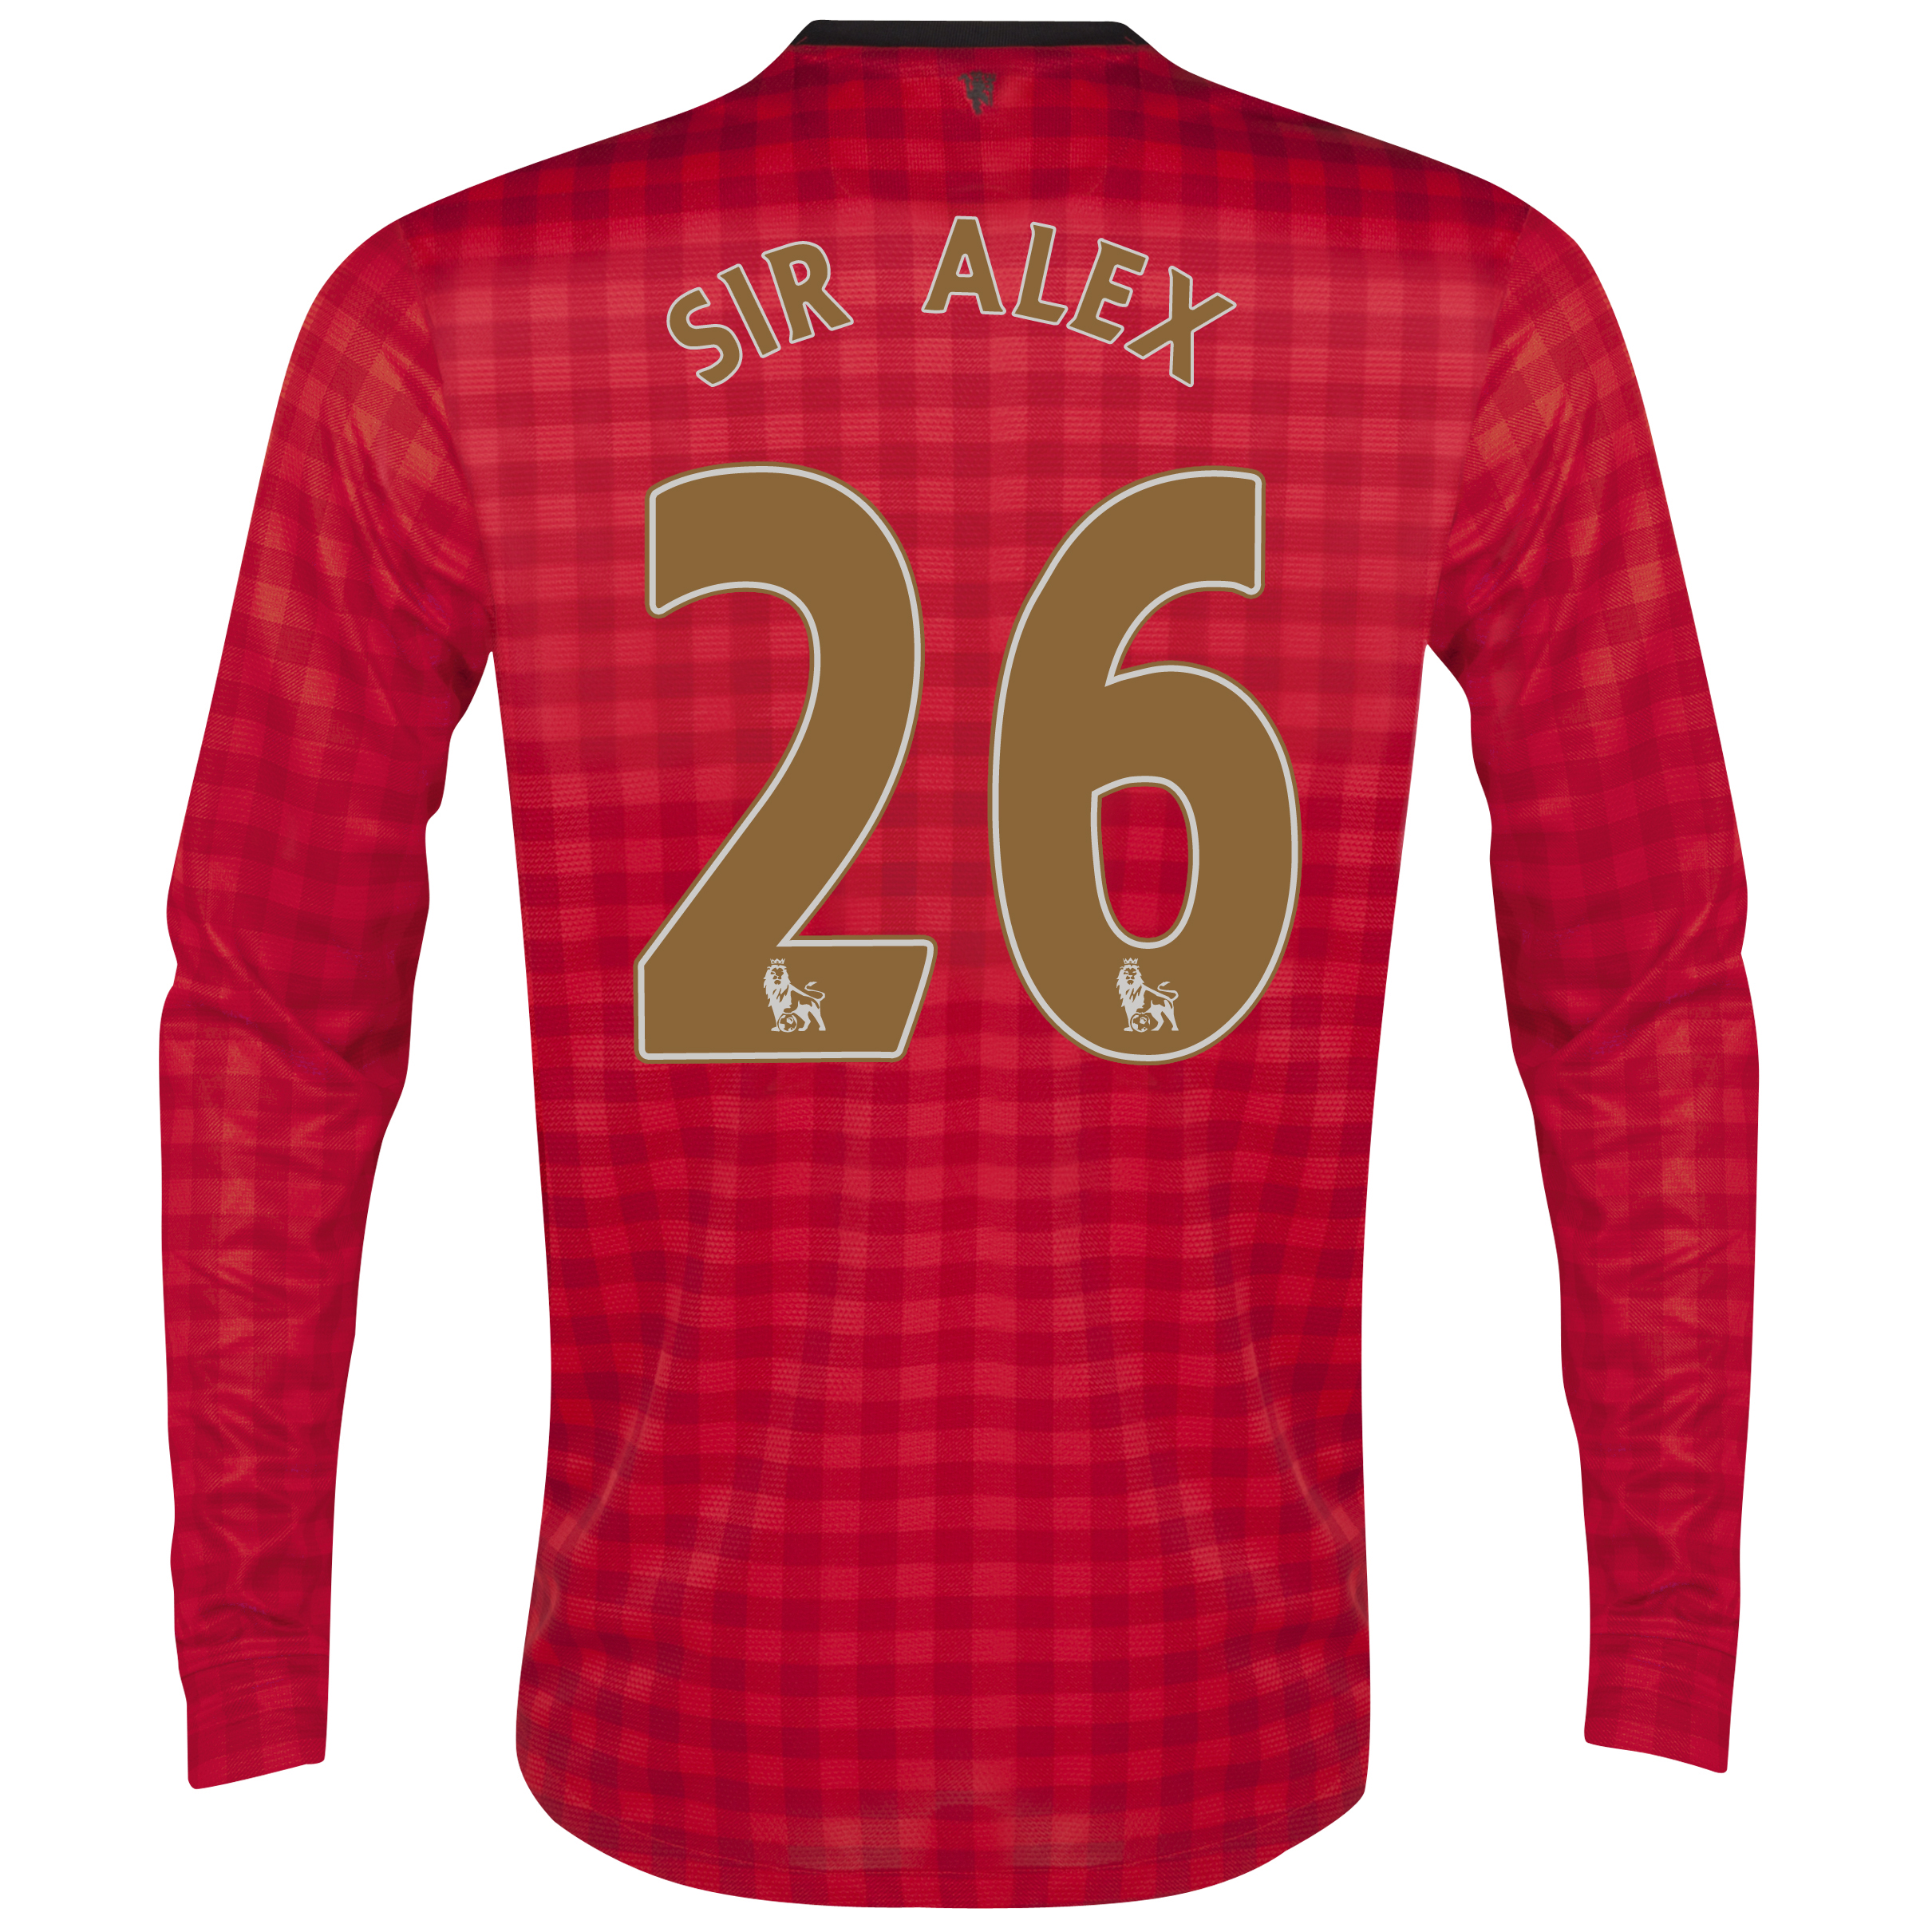 Manchester United Home Shirt 2012/13 - Long Sleeved  - Kids with Sir Alex 26 printing